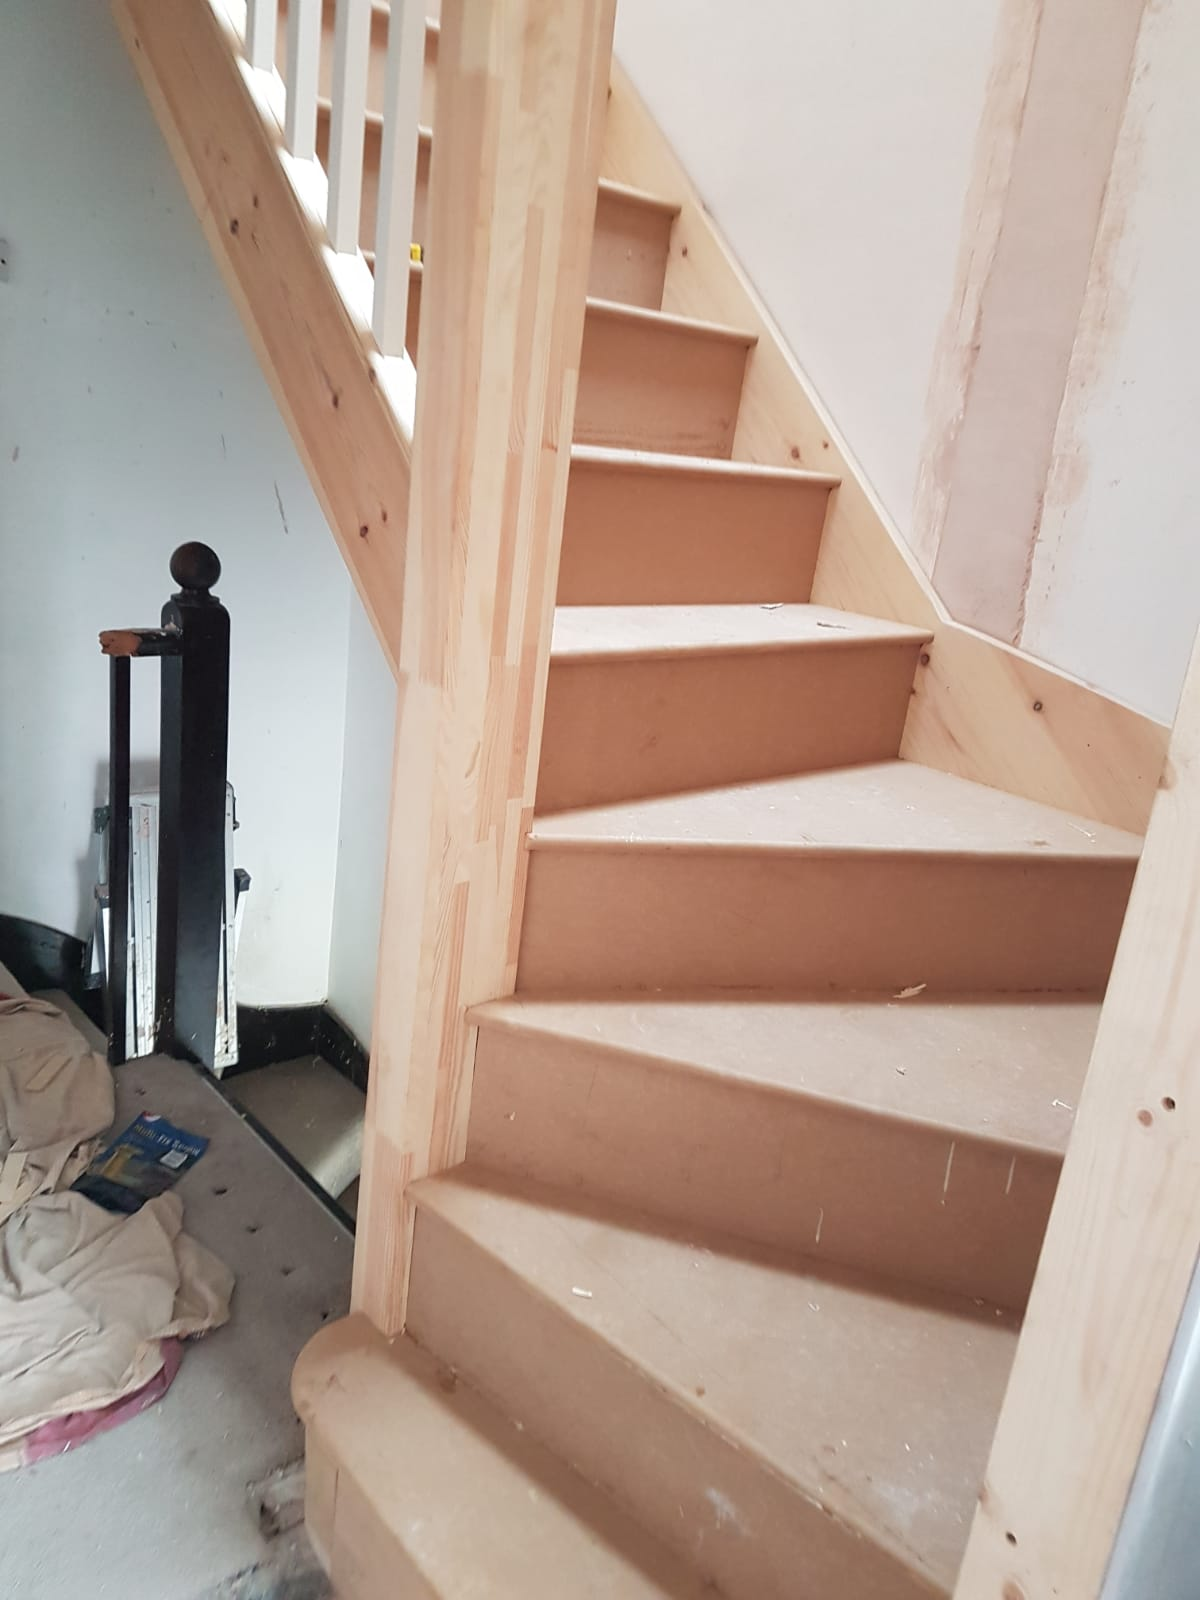 Bespoke winder staircase made and fitted on site